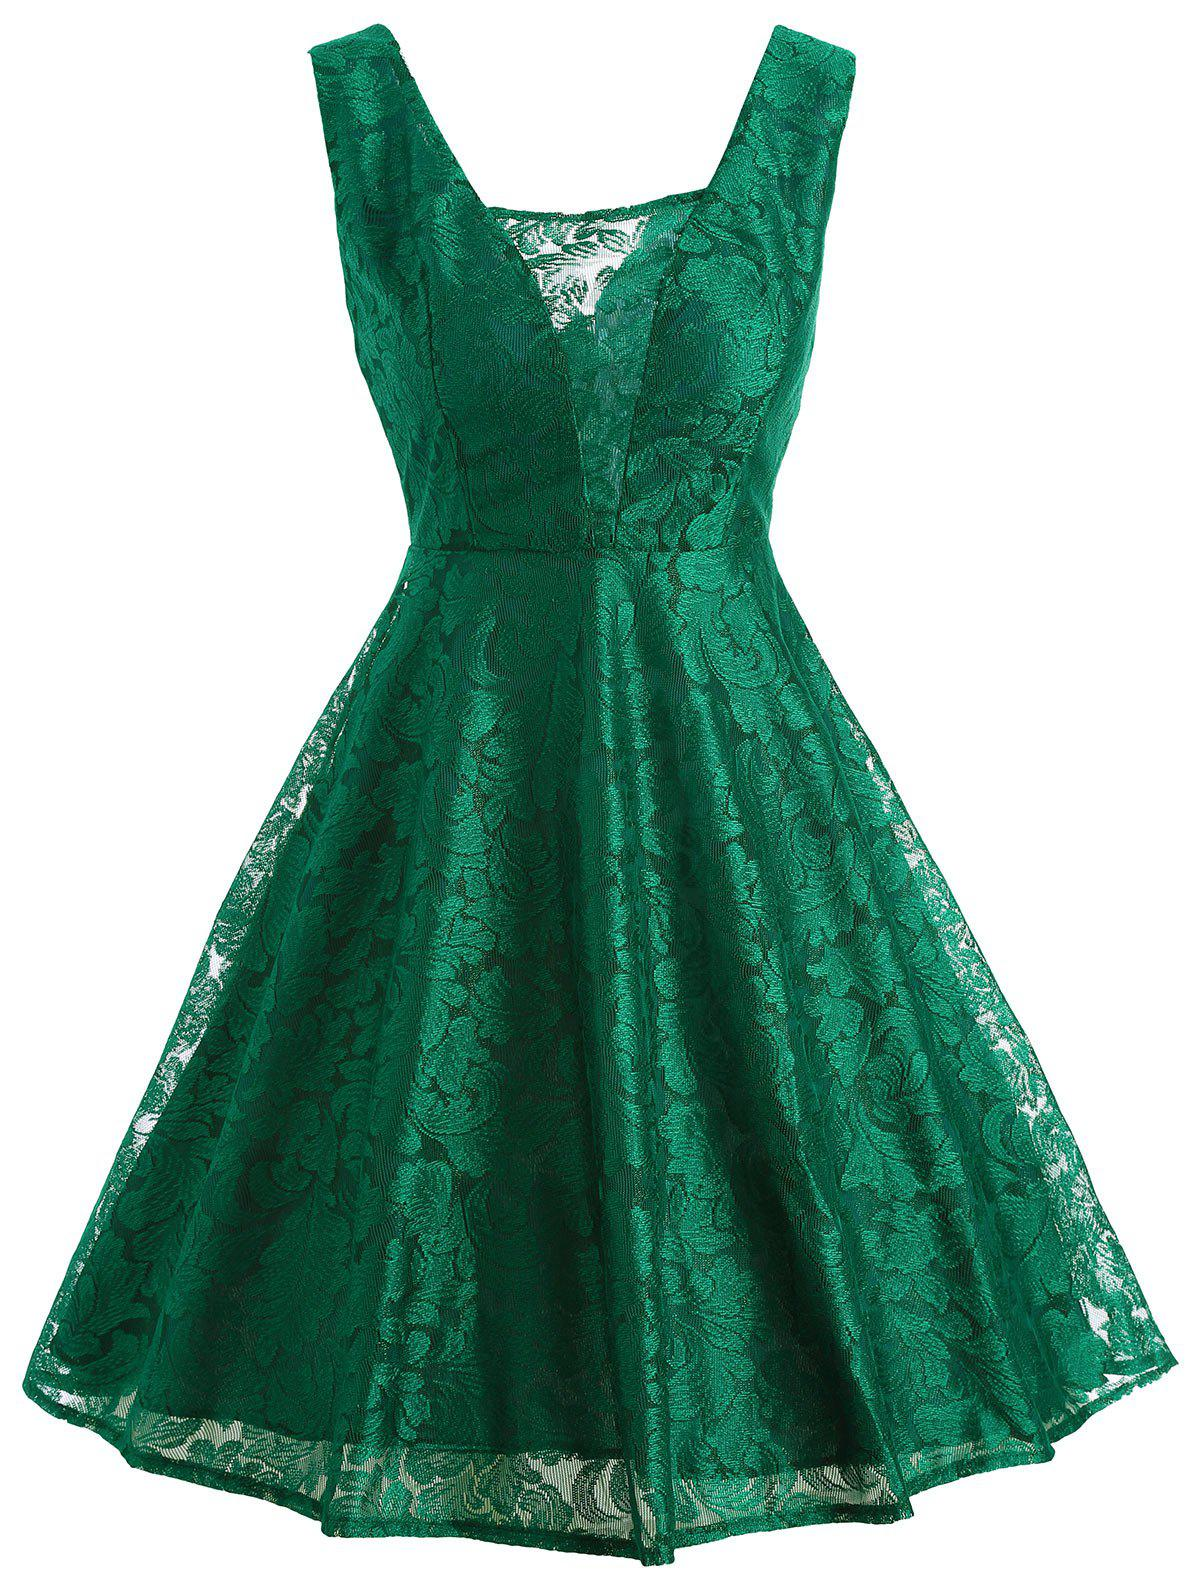 Retro Sleeveless Lace Fit and Flare Dress lace overlay fit and flare dress